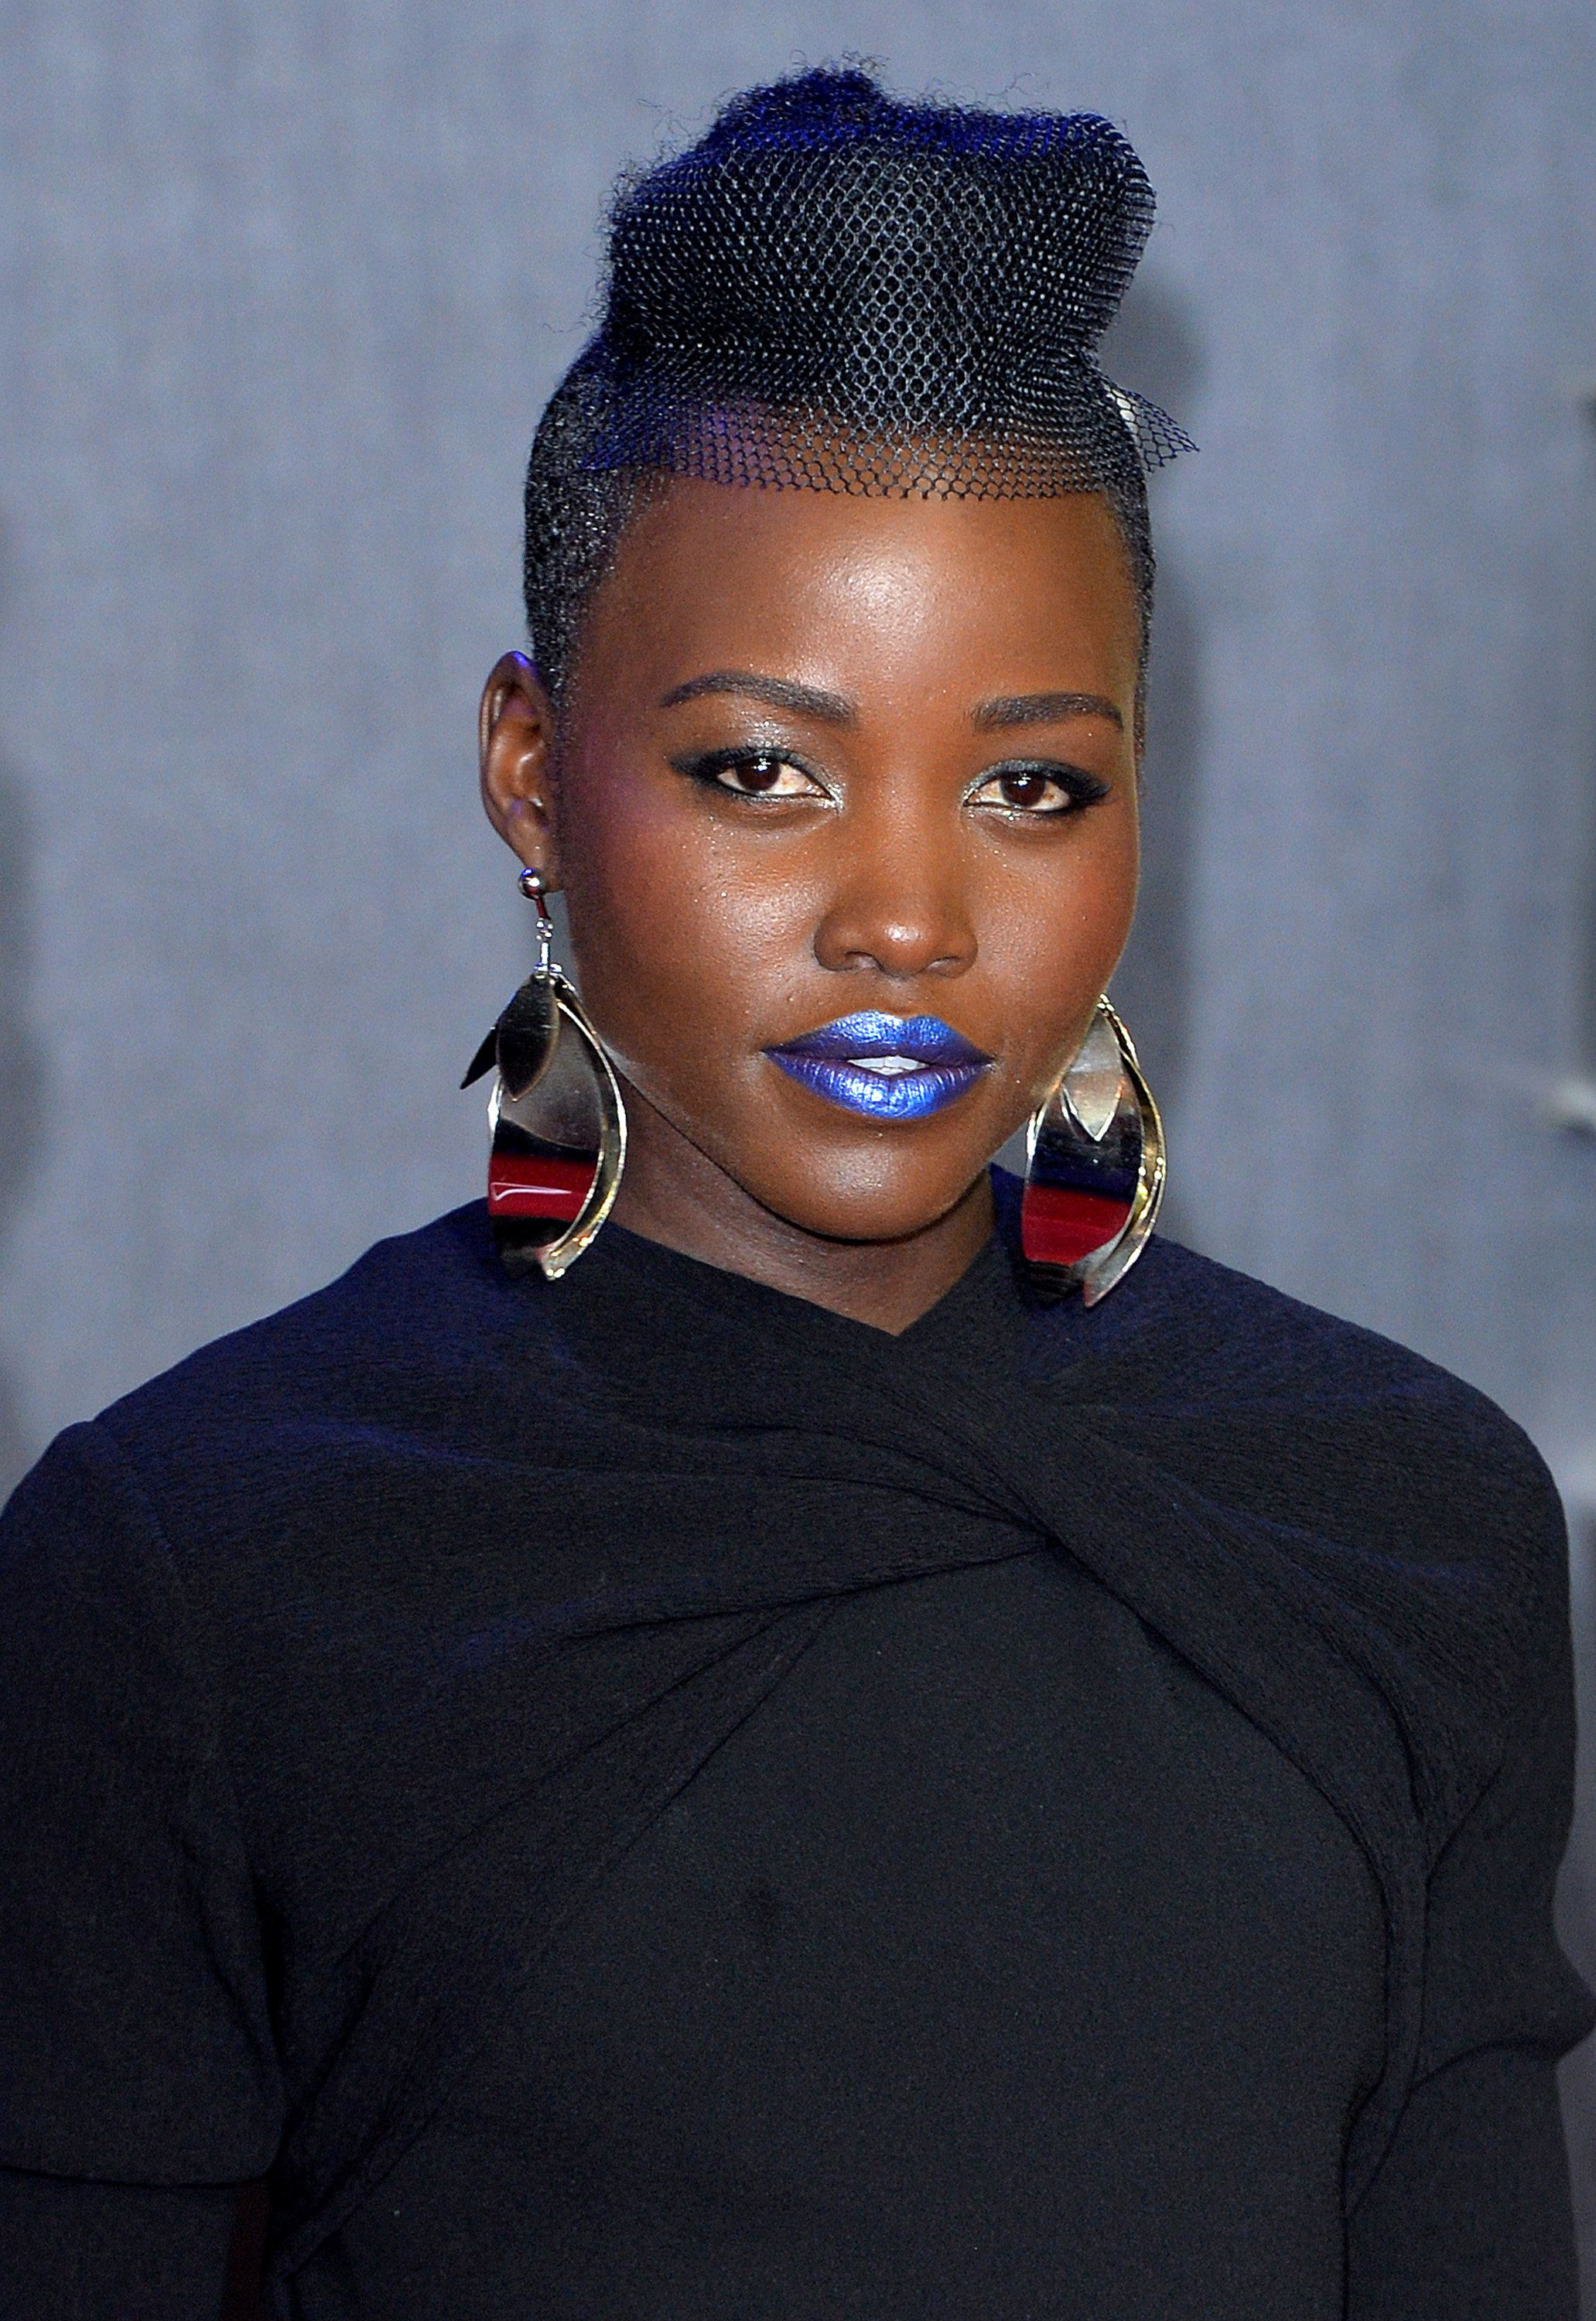 LONDON, ENGLAND - DECEMBER 16:  Lupita Nyong'o attends the European Premiere of 'Star Wars: The Force Awakens' at Leicester Square on December 16, 2015 in London, England.  (Photo by Anthony Harvey/Getty Images)